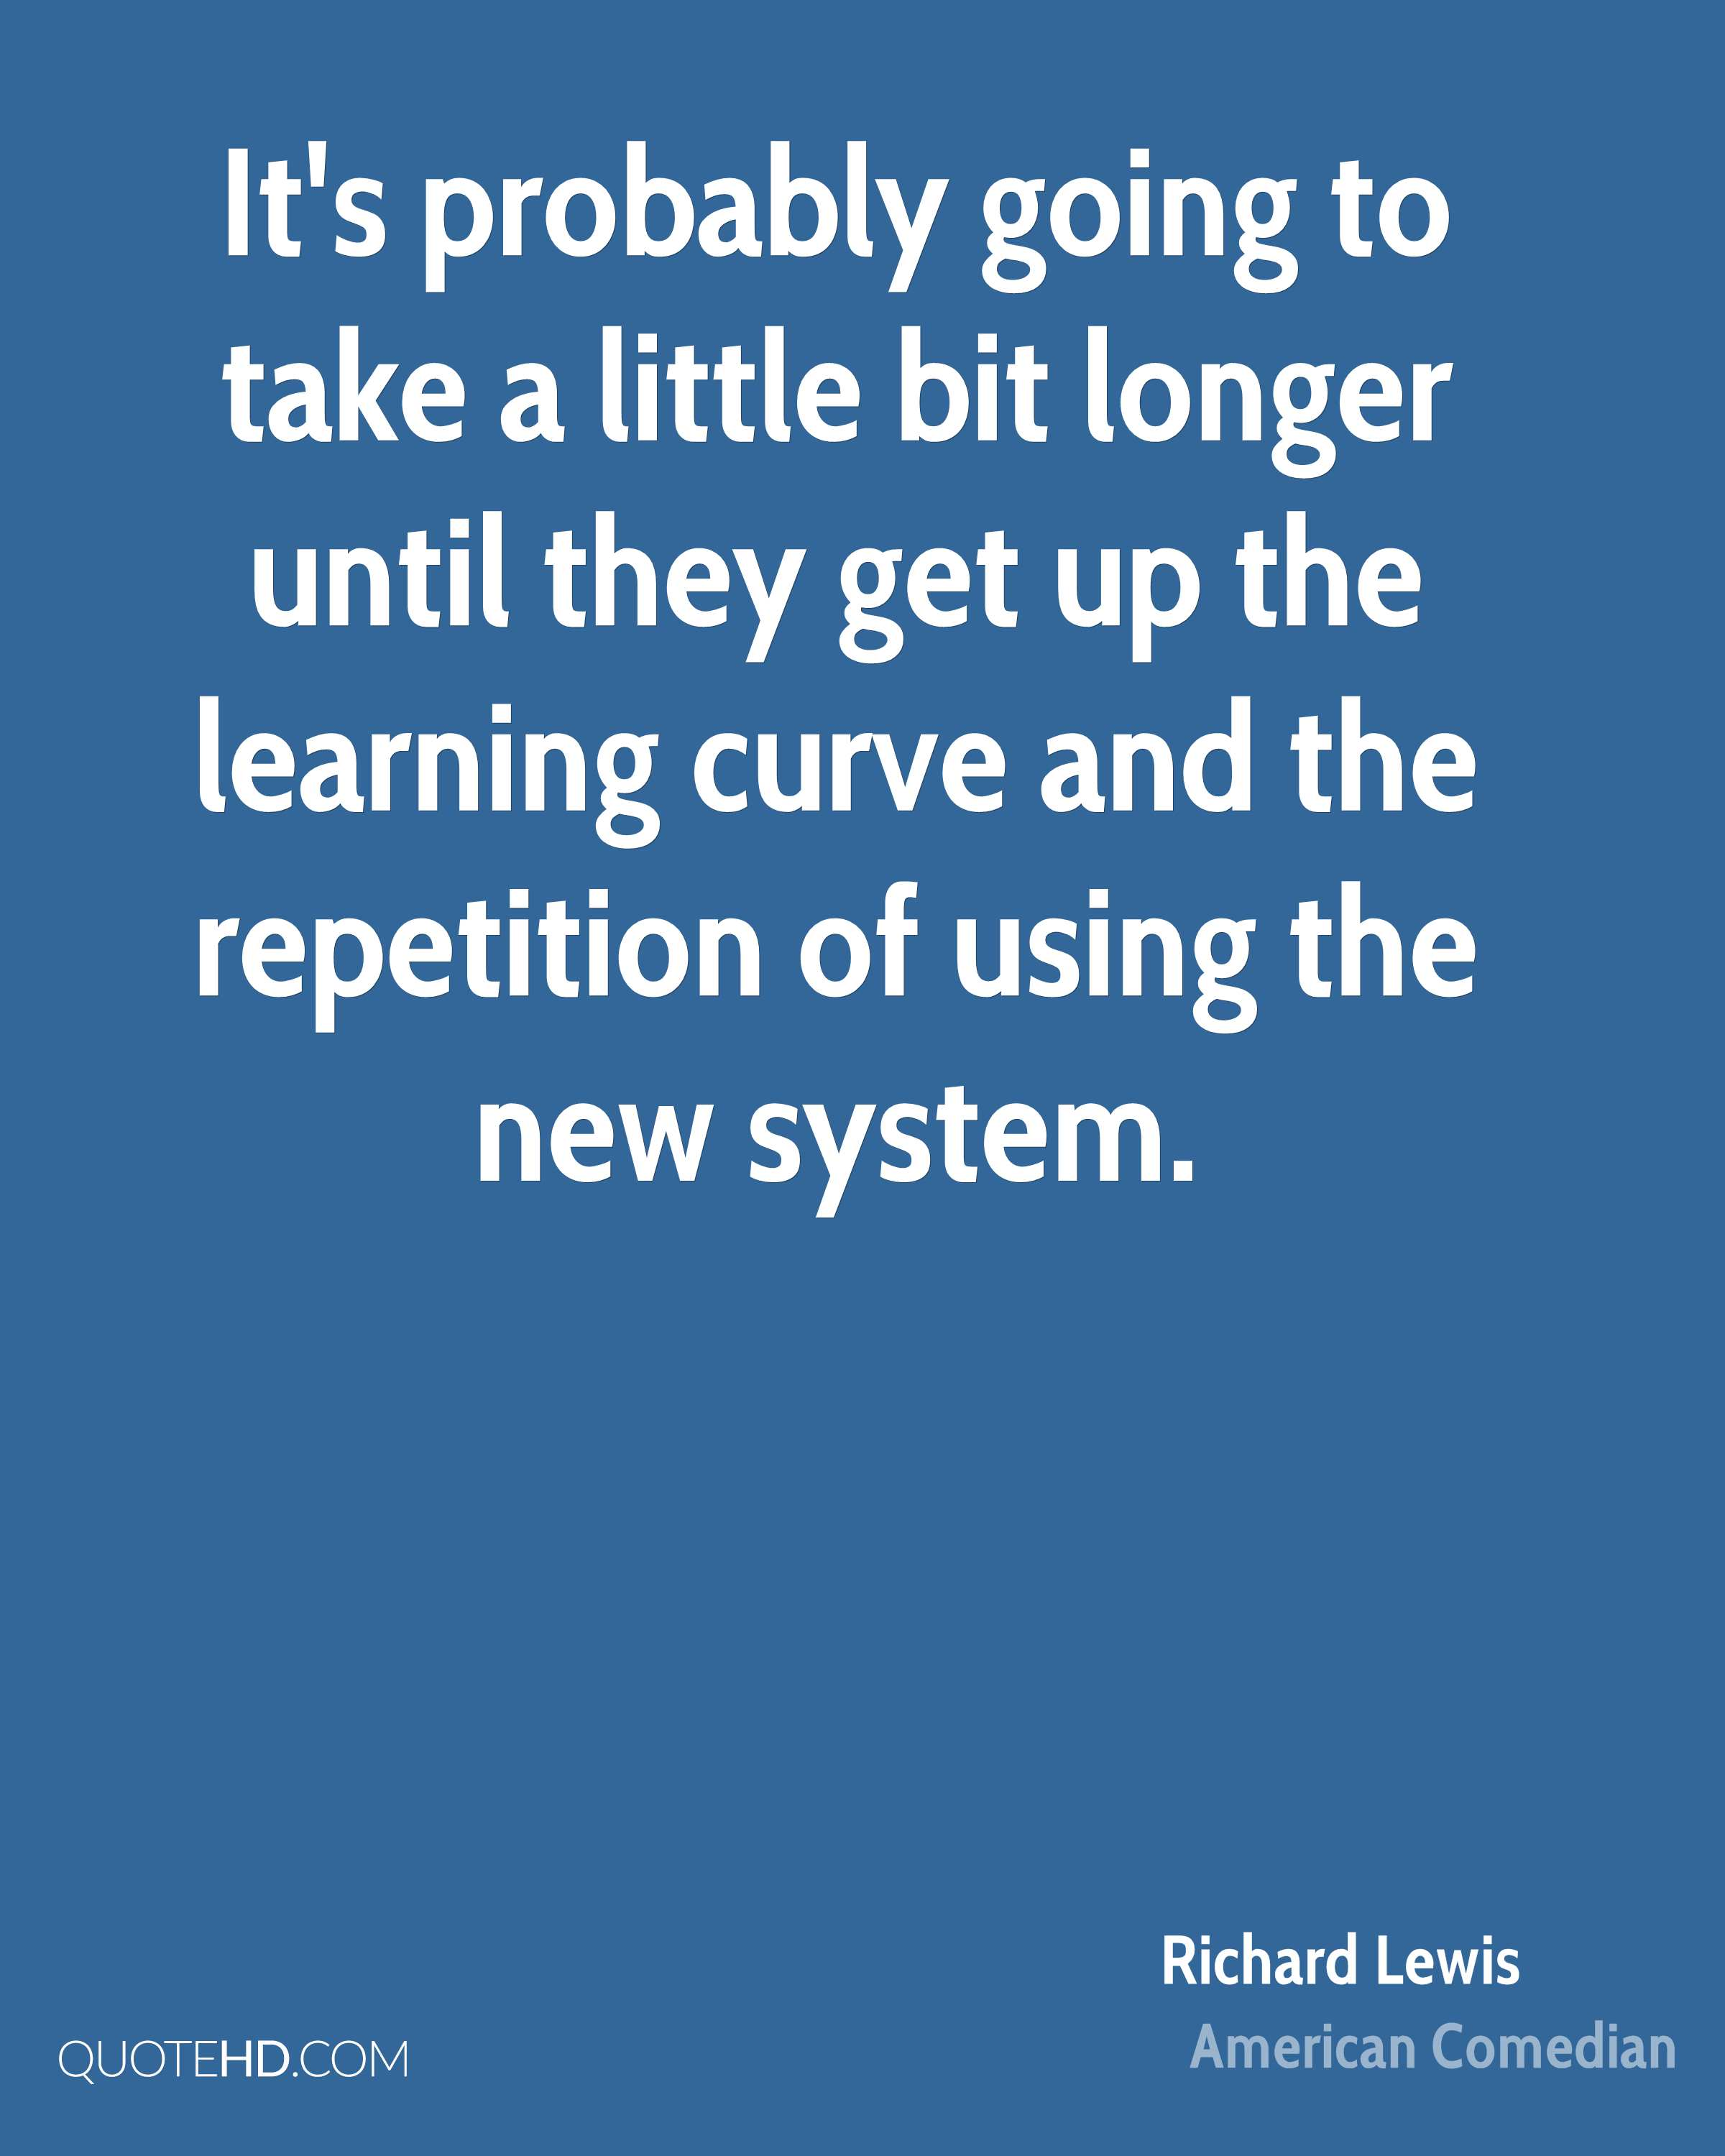 It's probably going to take a little bit longer until they get up the learning curve and the repetition of using the new system.